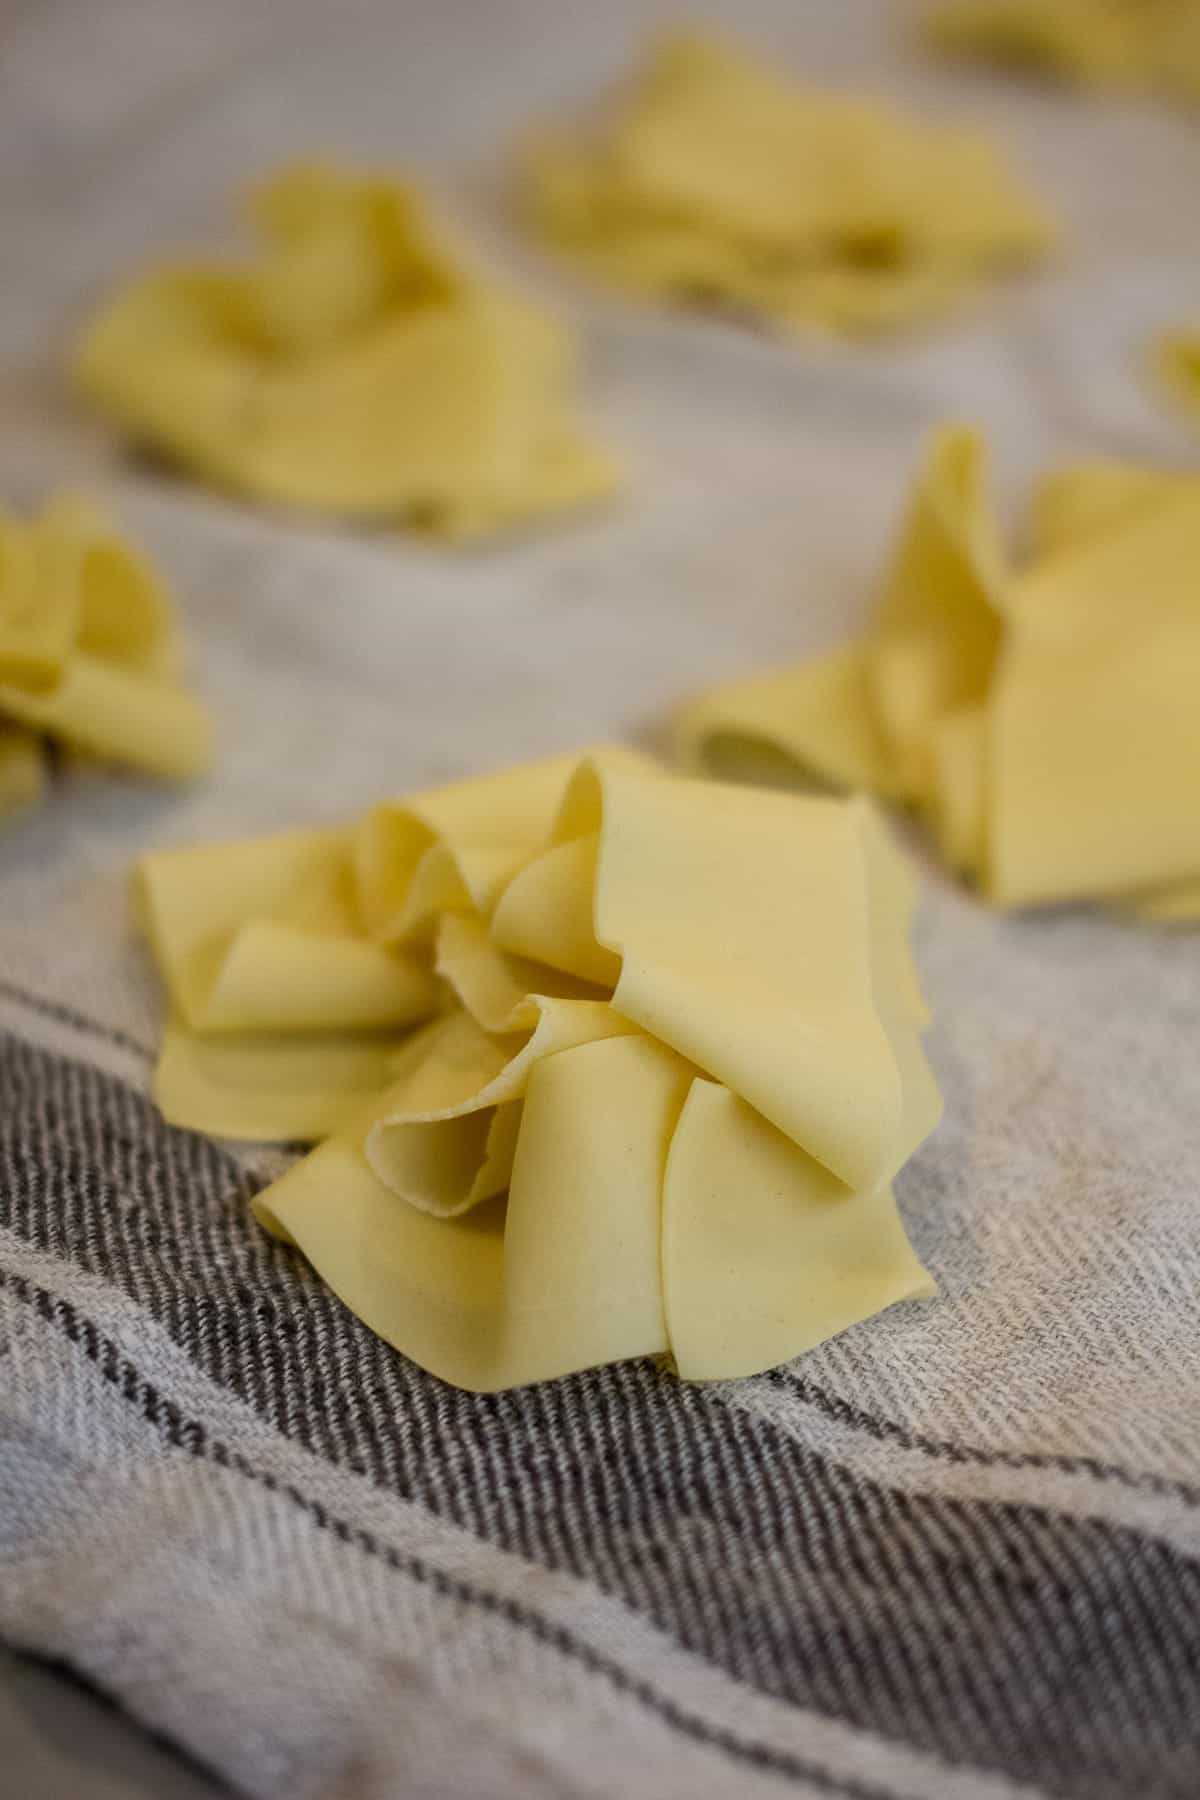 Pappardelle selbstgemacht | SOAP|KITCHEN|STYLE